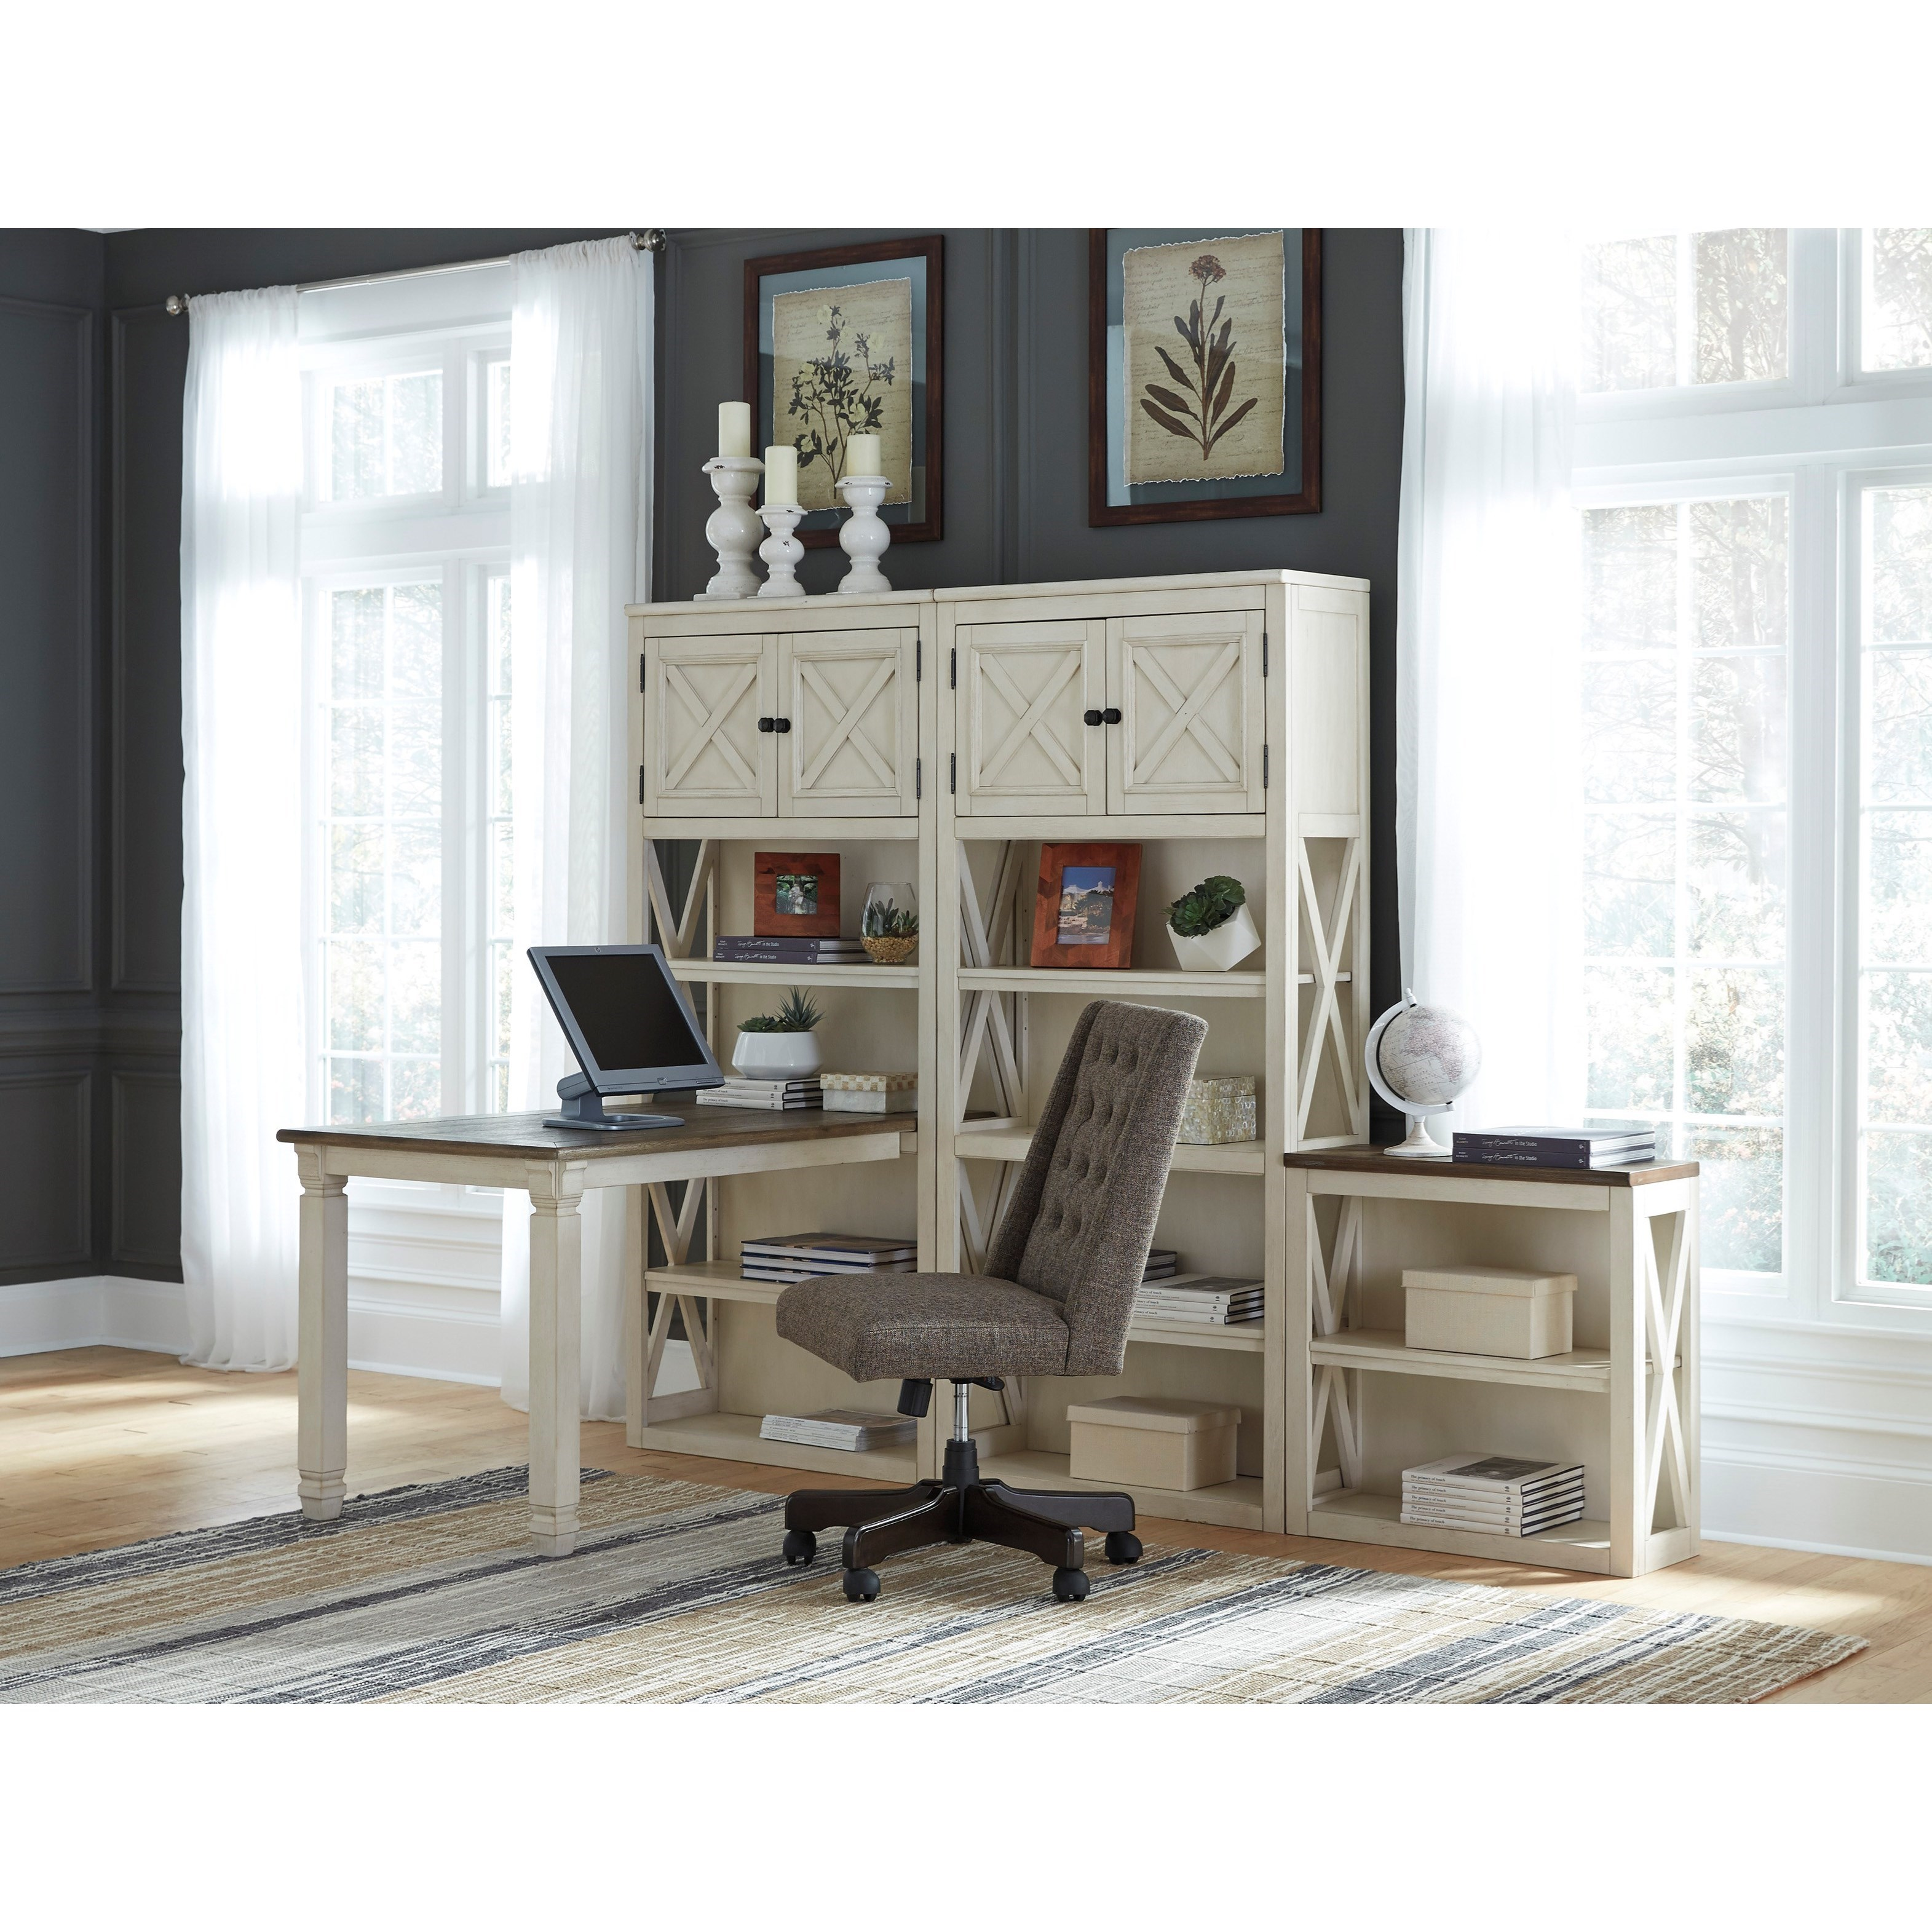 l writing sophistication furniture filing secretary with computer brings cabinet rich for your small distressed ashley into curved desk home shaped desks coaster office hutch a carlyle